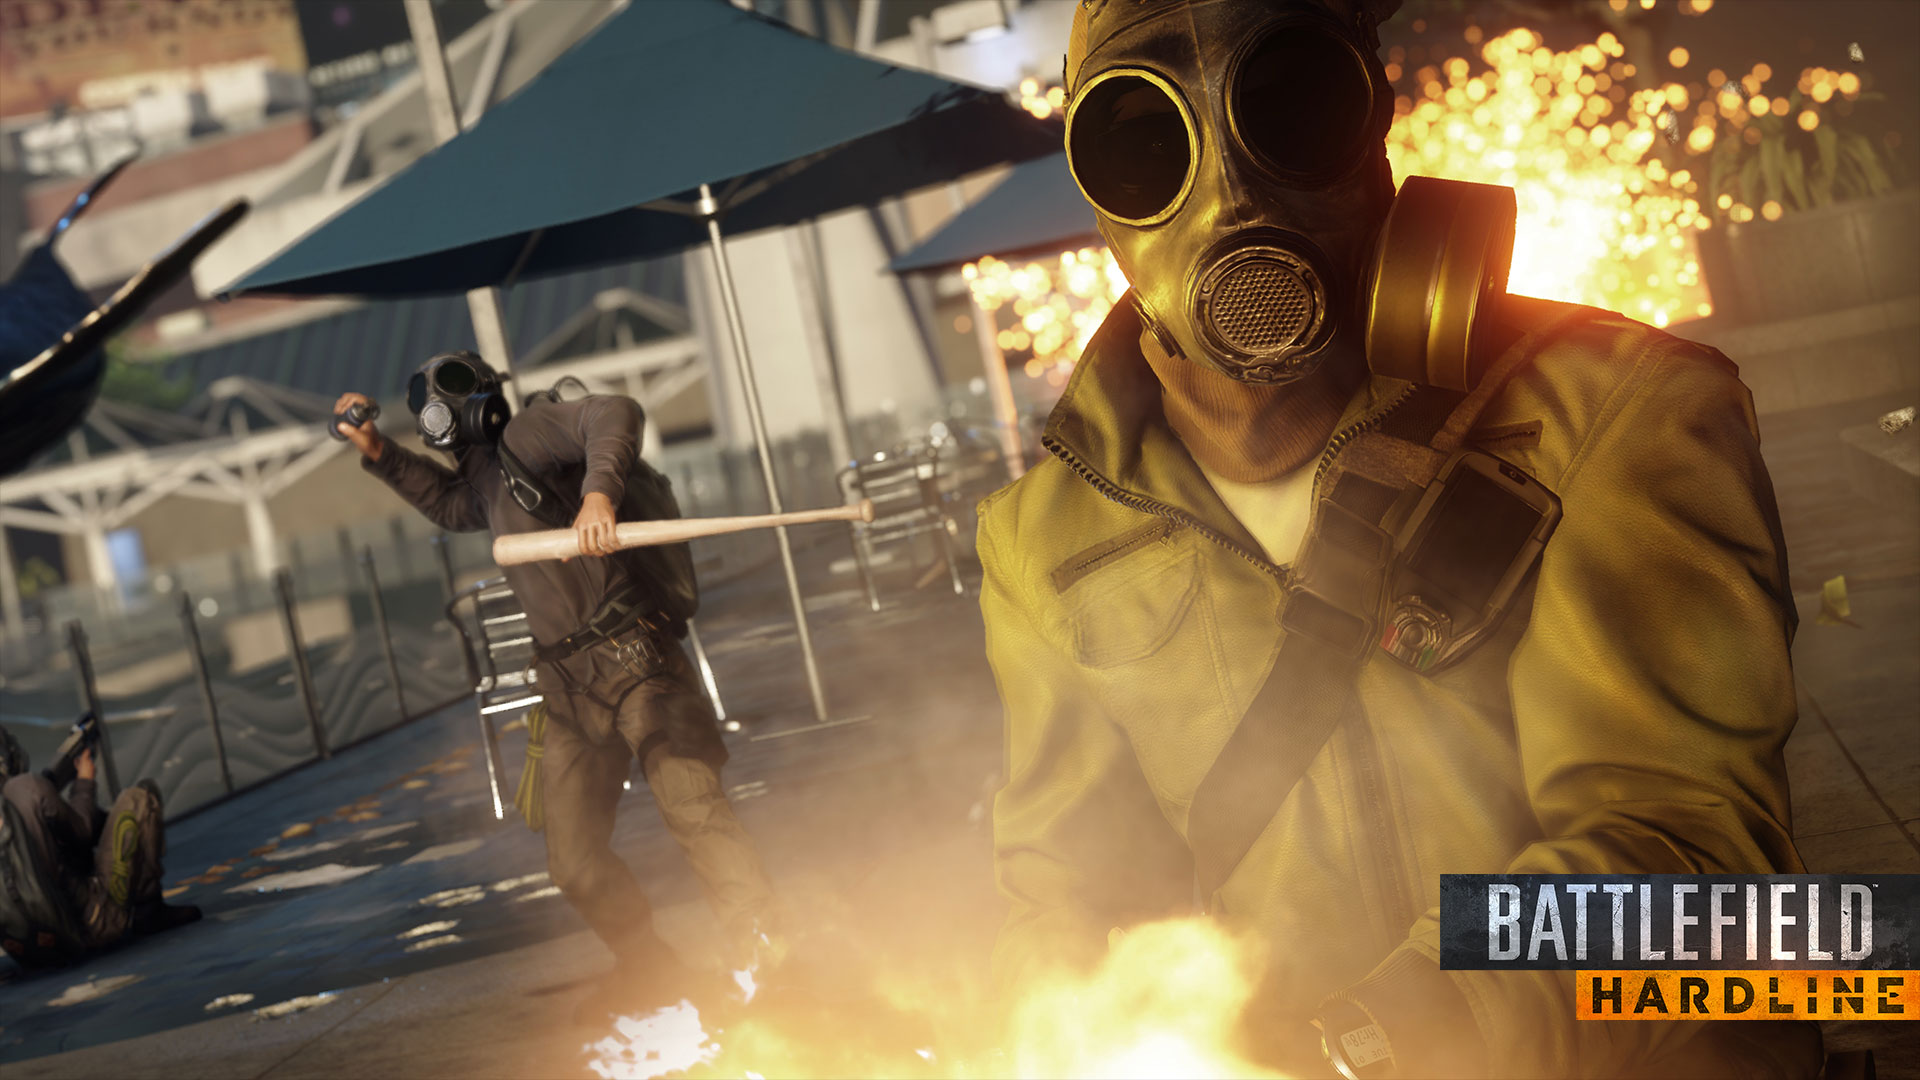 Battlefield Hardline and the silent agony of villains